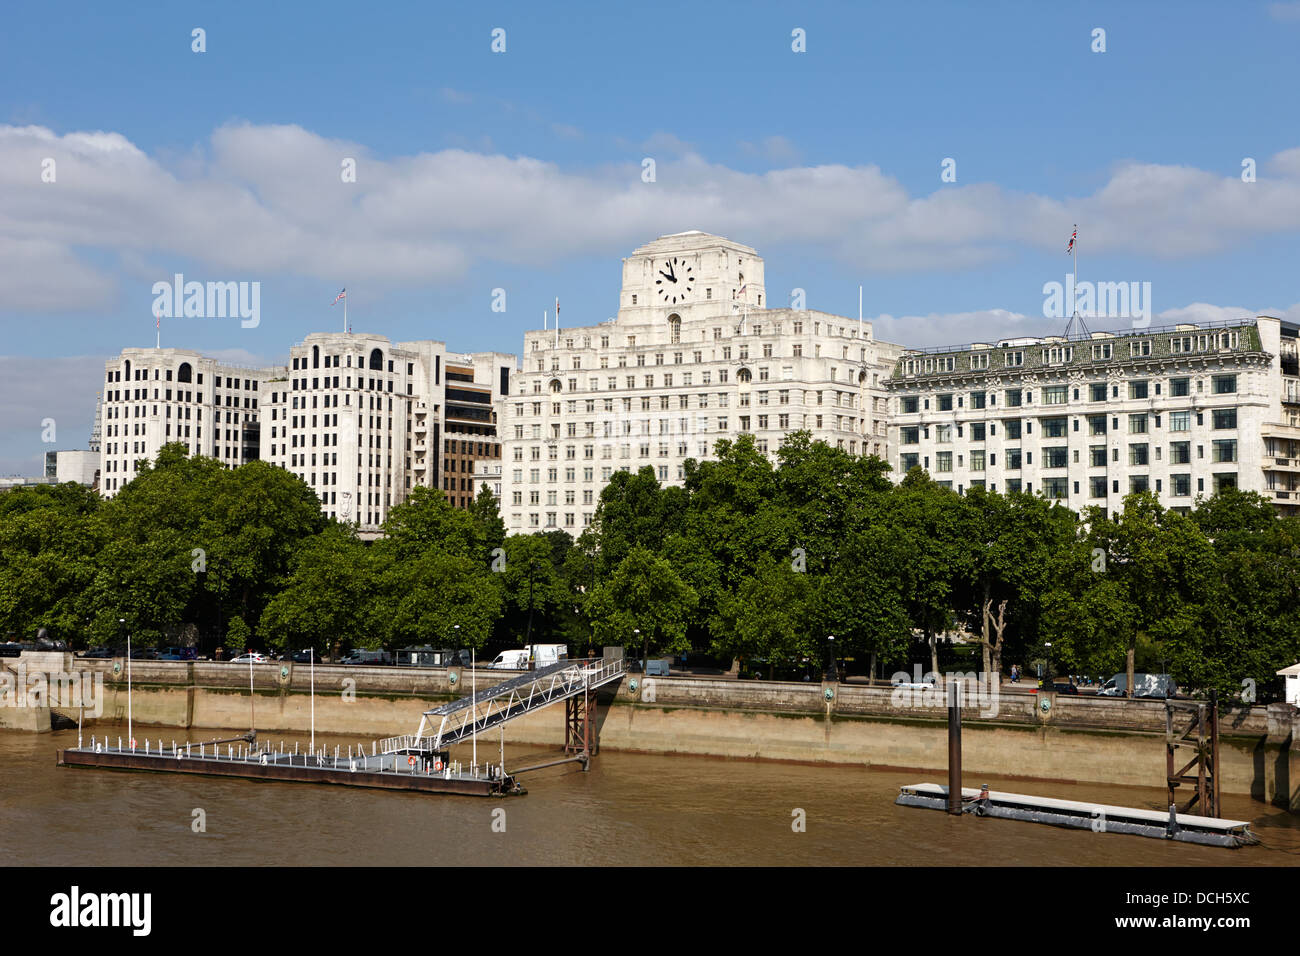 the adelphi shell mex house and the savoy hotel victoria embankment London England UK - Stock Image